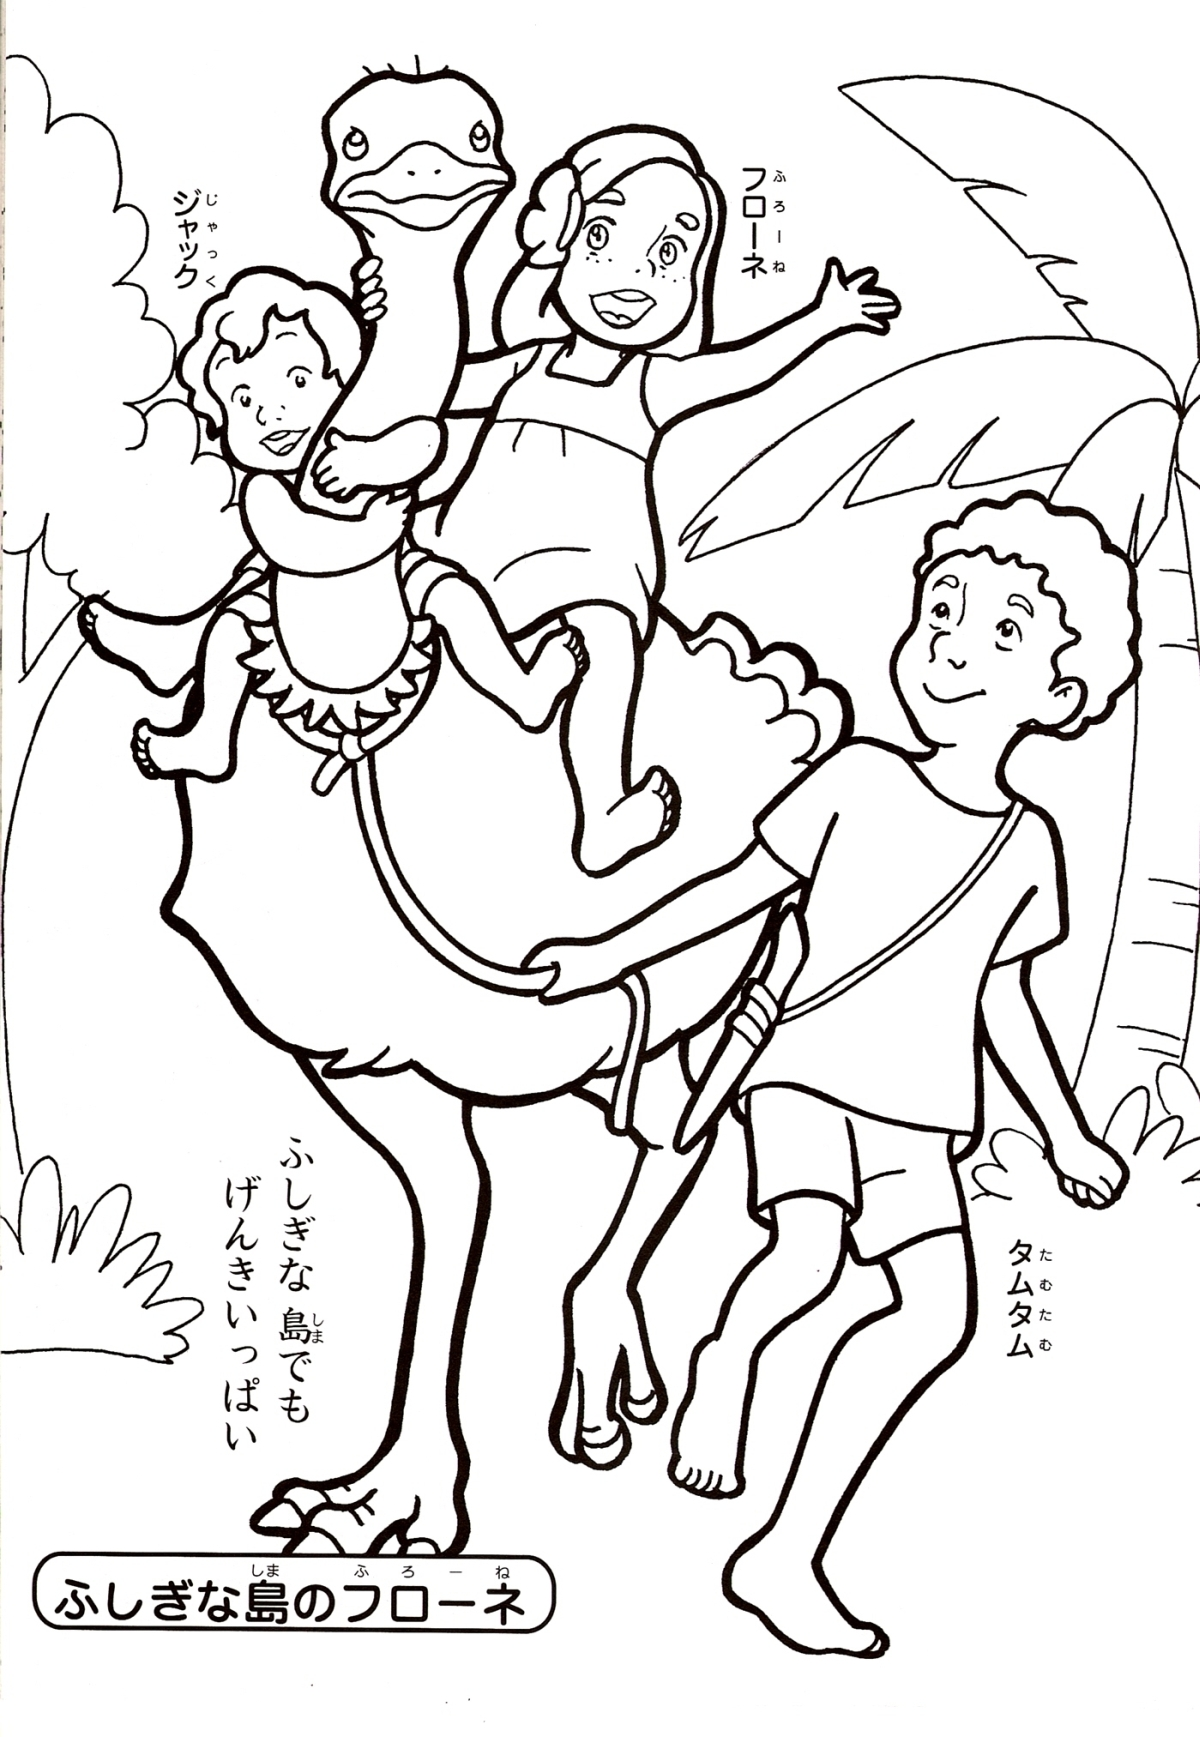 moon festival coloring pages - photo#28